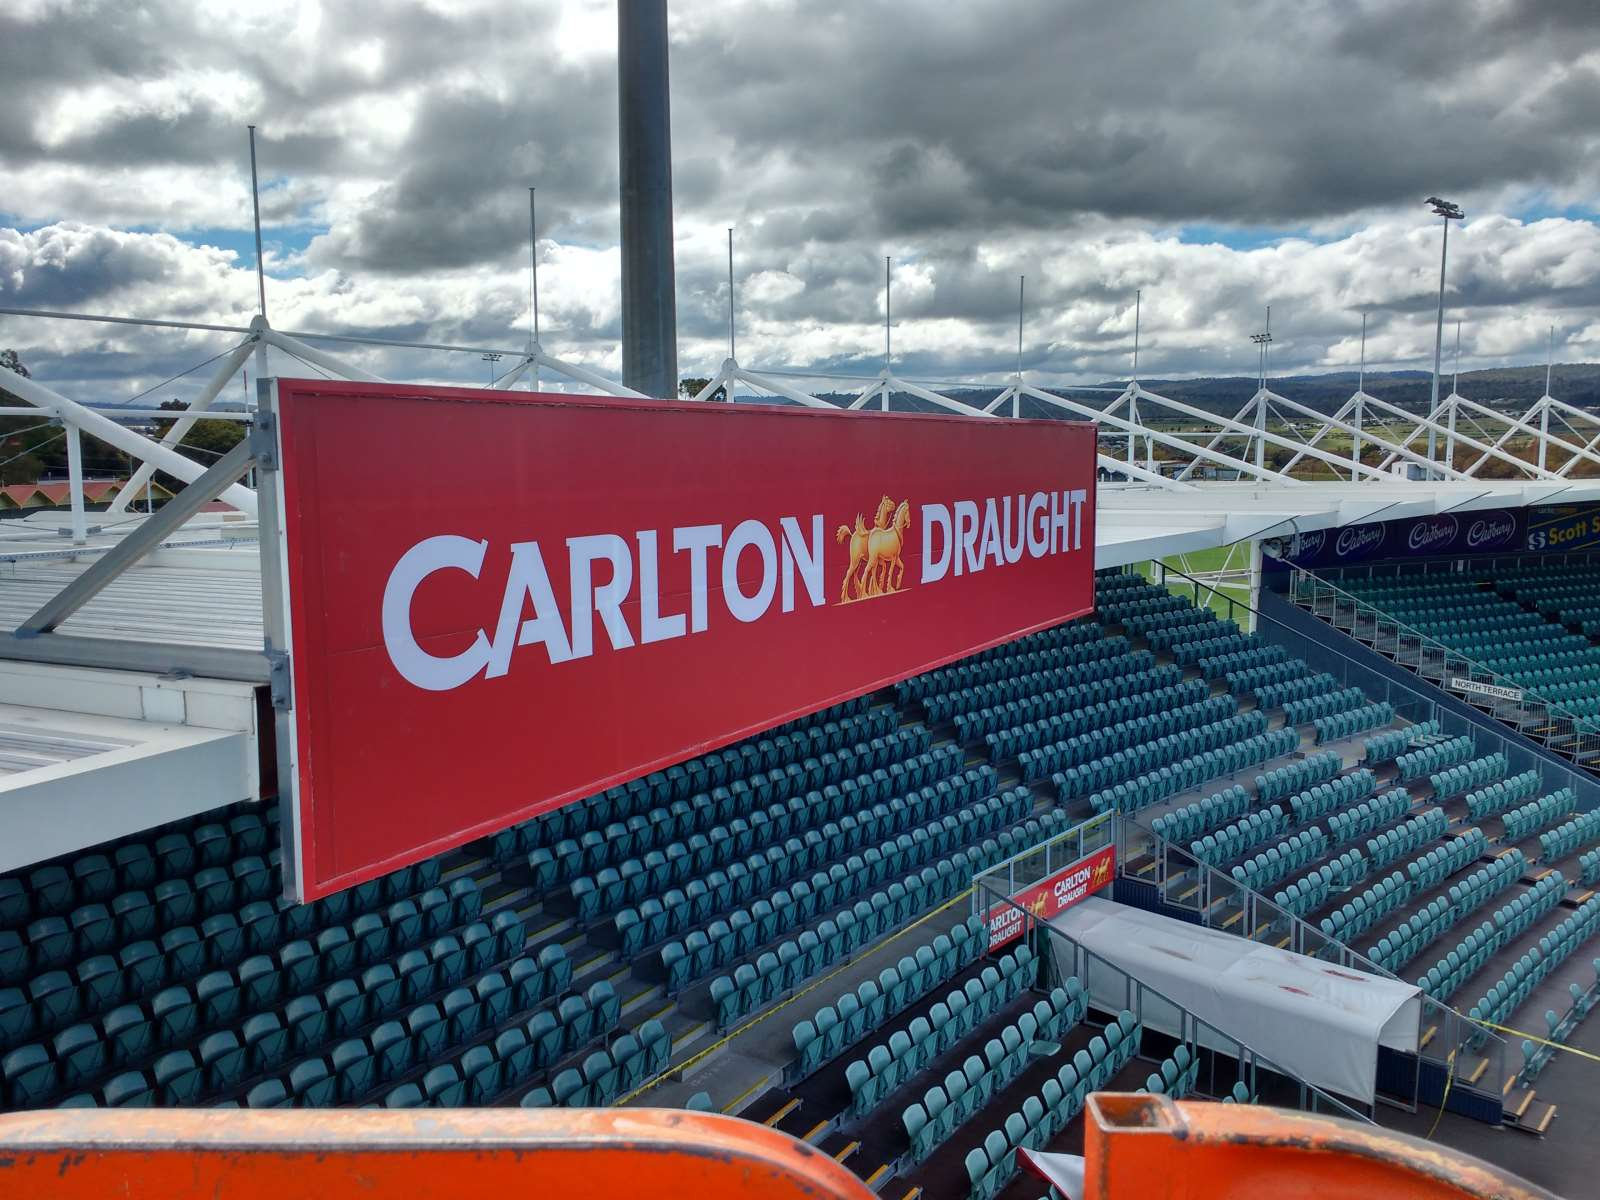 Carlton Draught stadium marketing sign